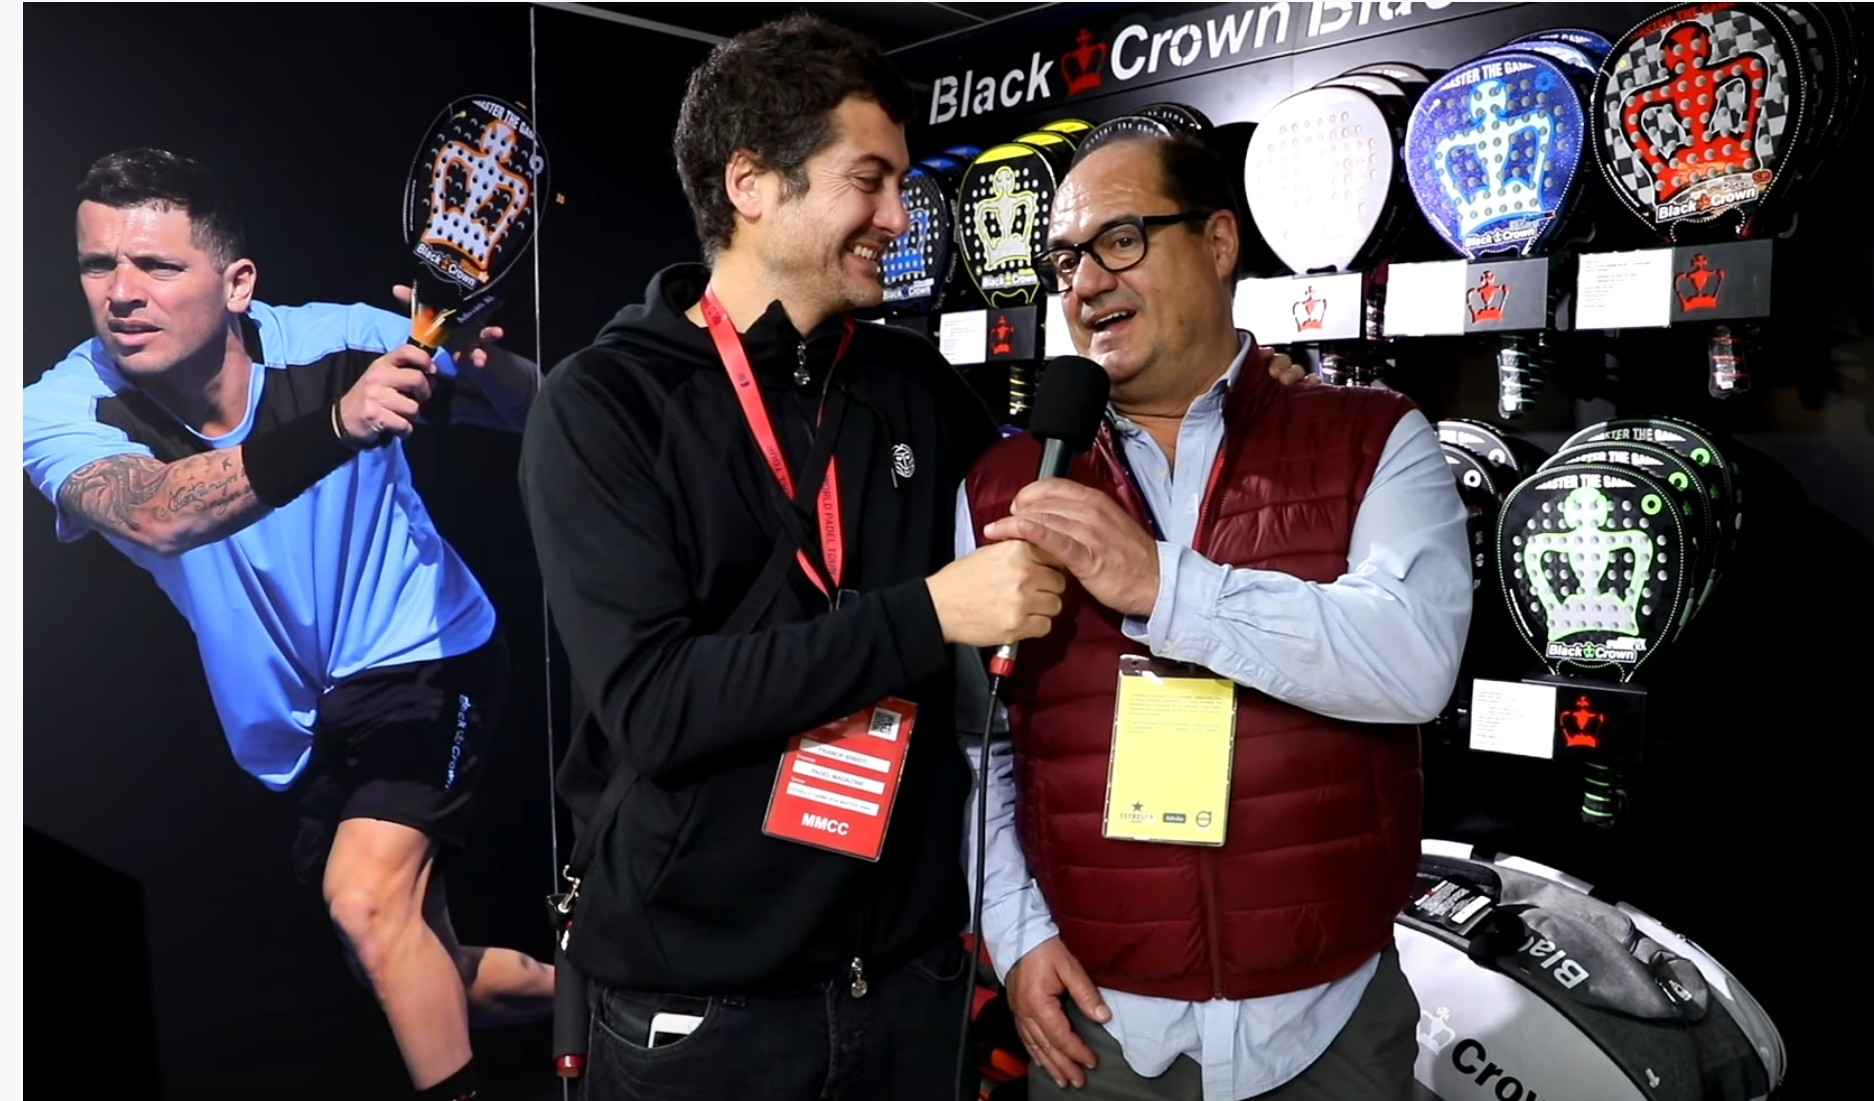 Jordi ravirosa black crown 2020 | Entrevista Jordi Ravirosa | Black Crown Nakano 3K | Black Crown Piton 8.0